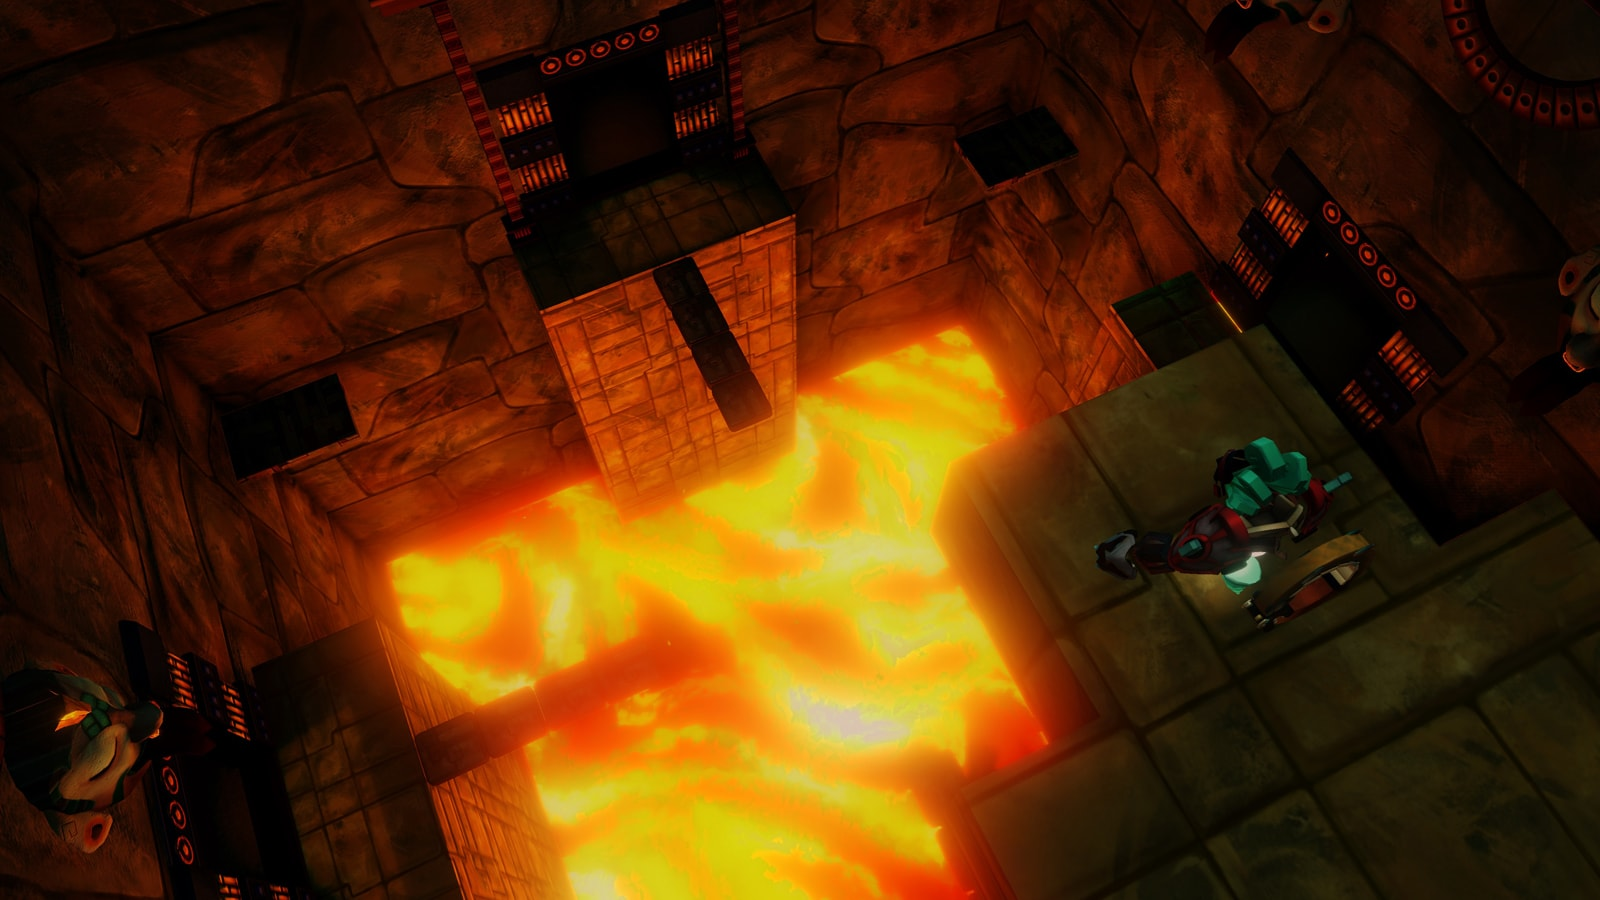 A glowing red lava pit at the bottom of a stone temple room.